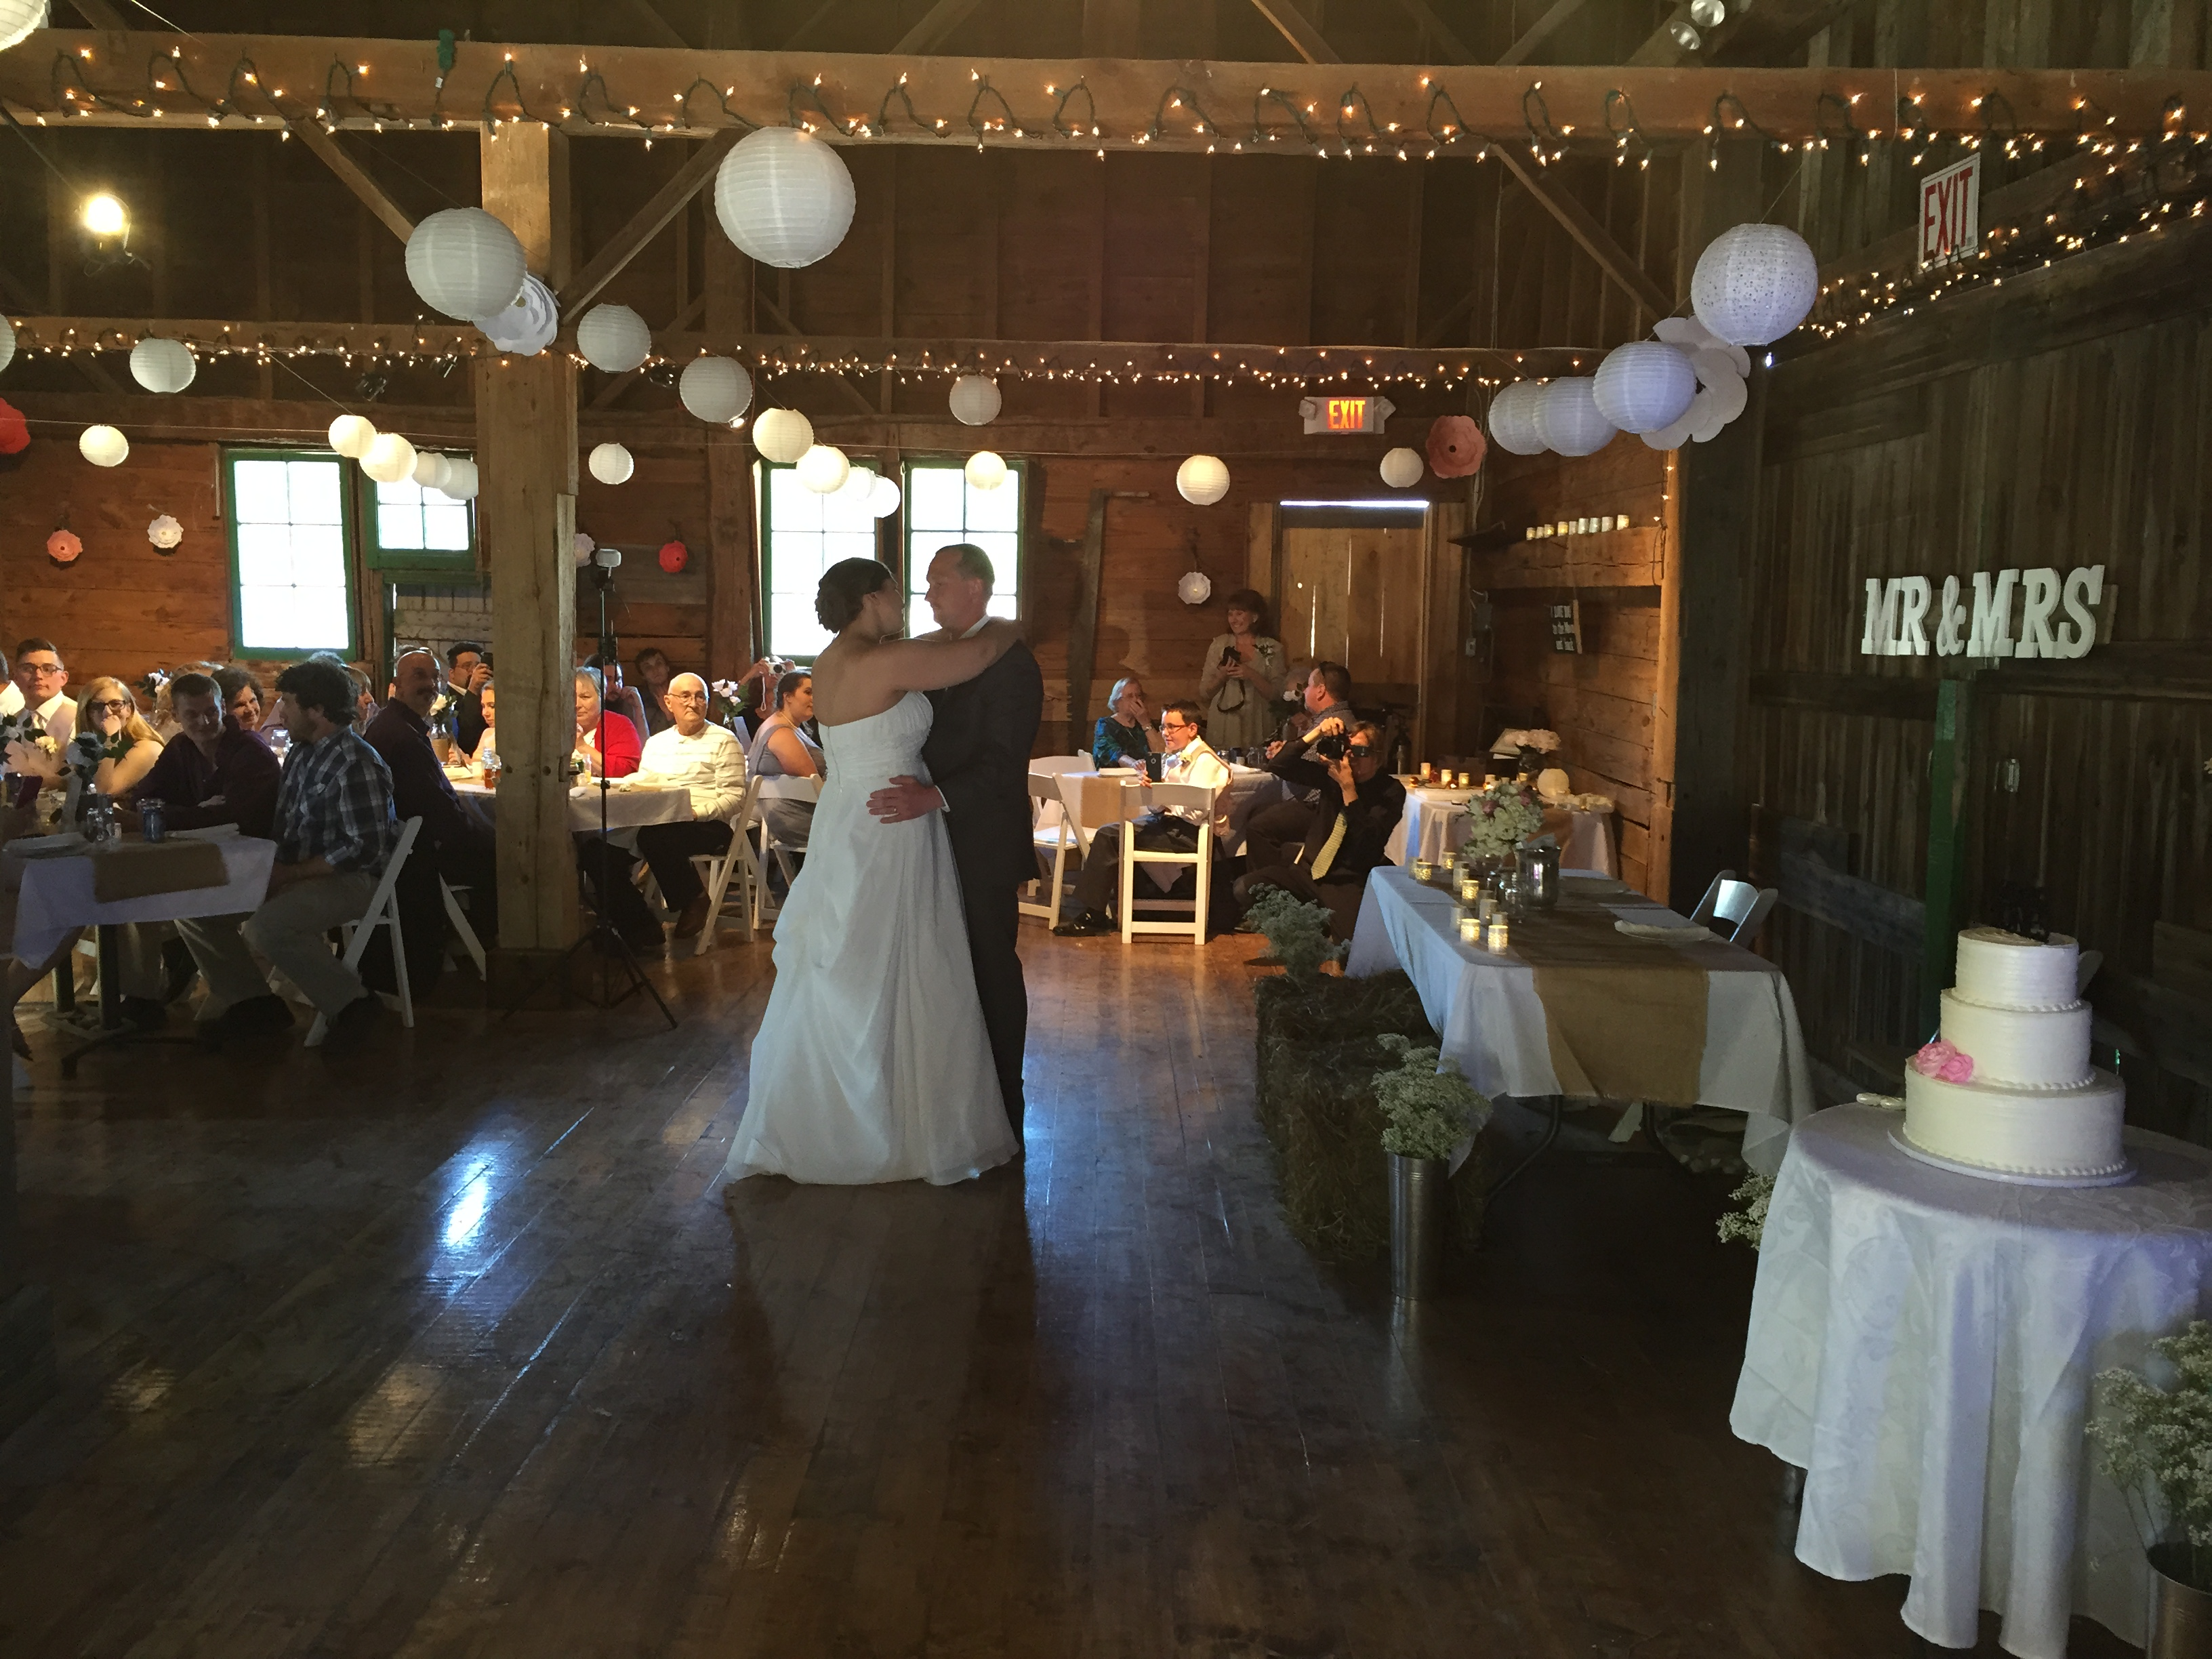 518-506-3305 - DJ Kenny Casanova is a high-quality Wedding DJ in Albany NY. Need an Albany DJ Service for a party or Mitzvah? Book the best DJ Service in Sarato